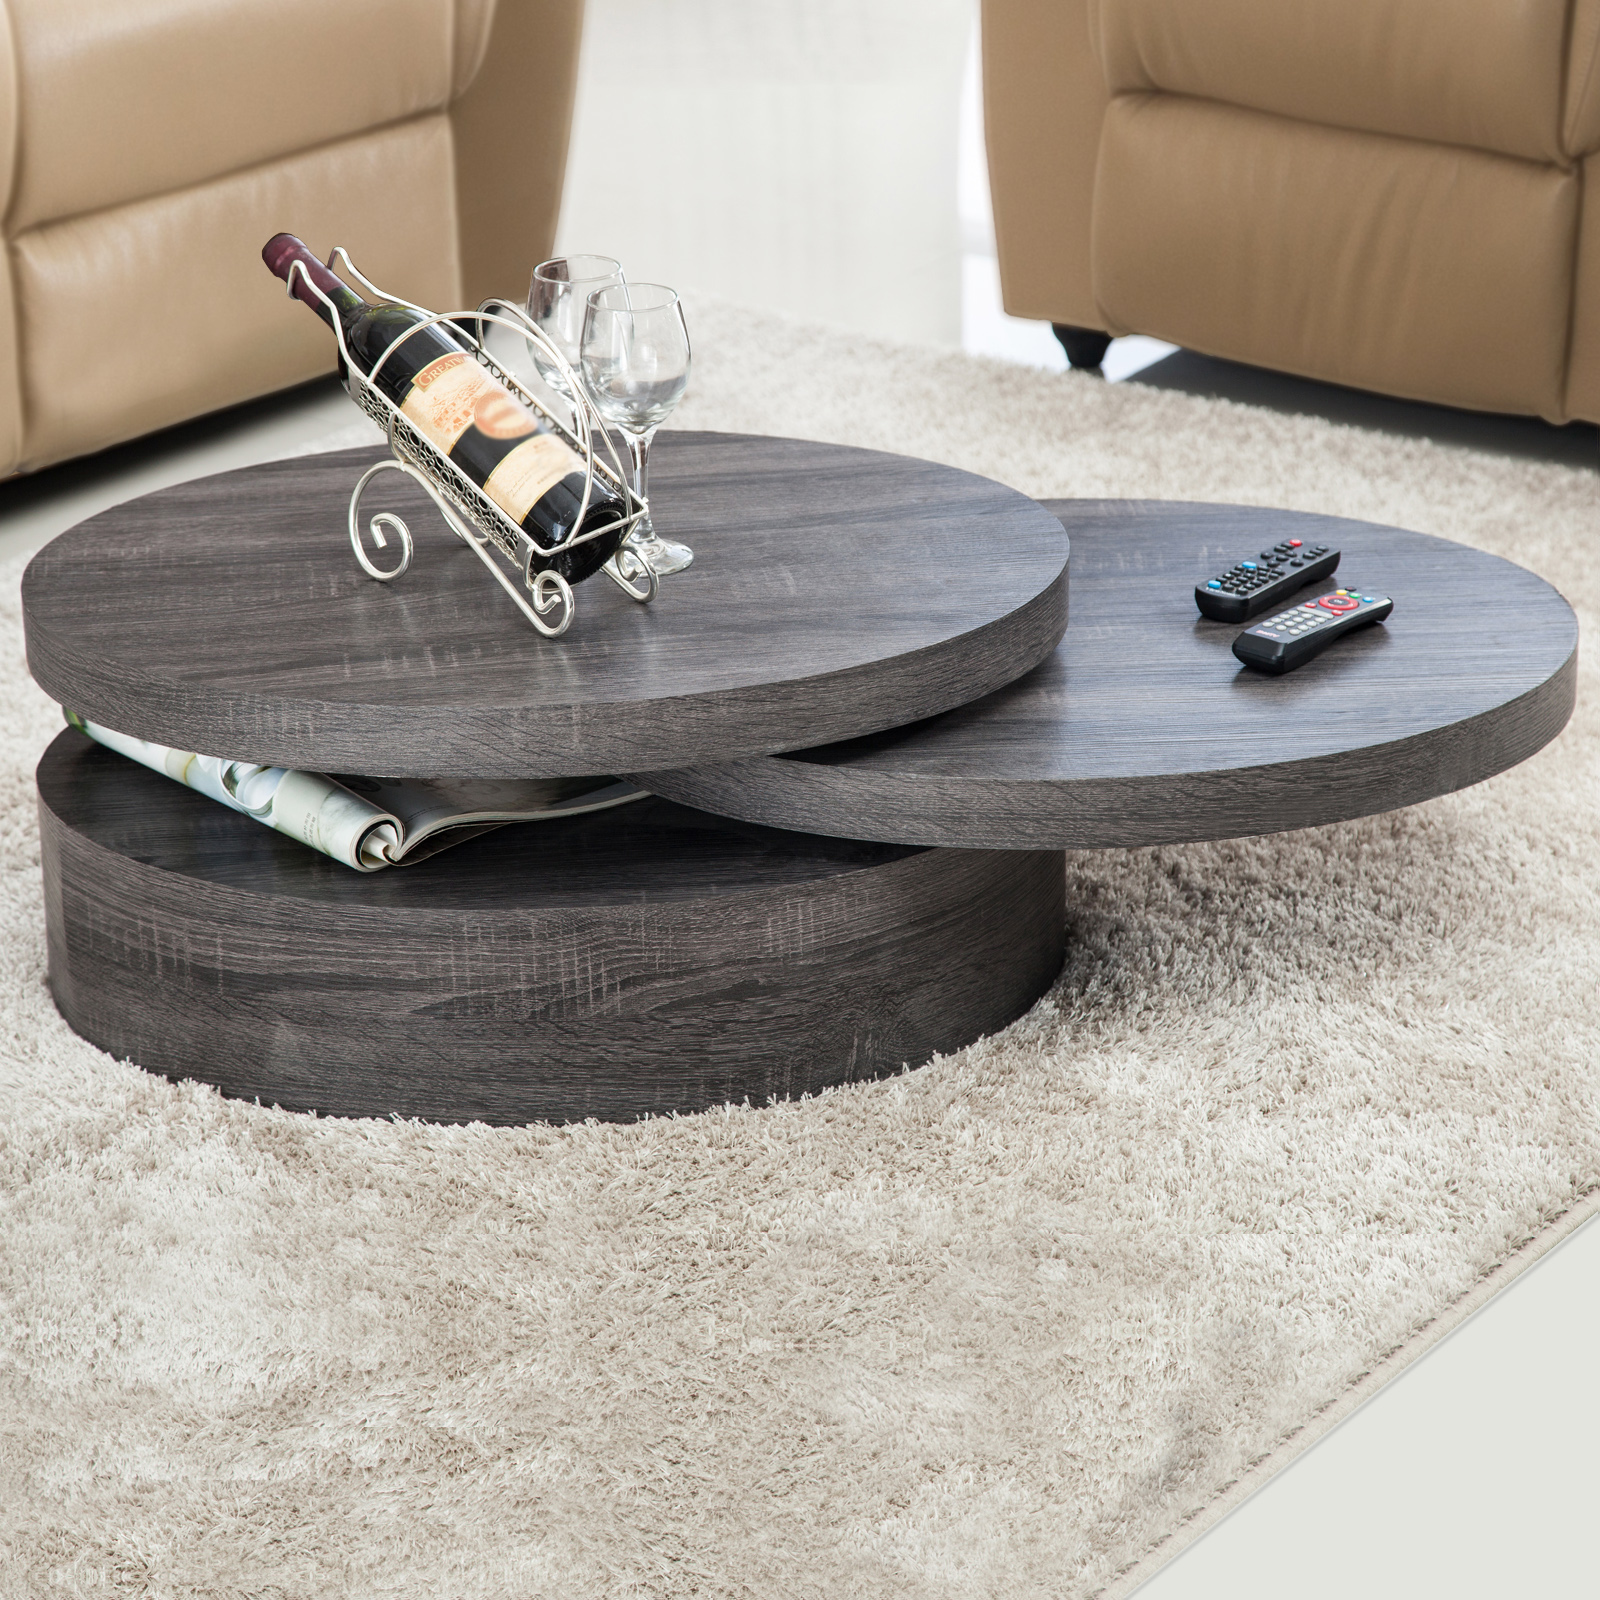 Modern Round Wooden Coffee Table 110: Modern Contemporary Black Oak Round Rotating Wood Coffee